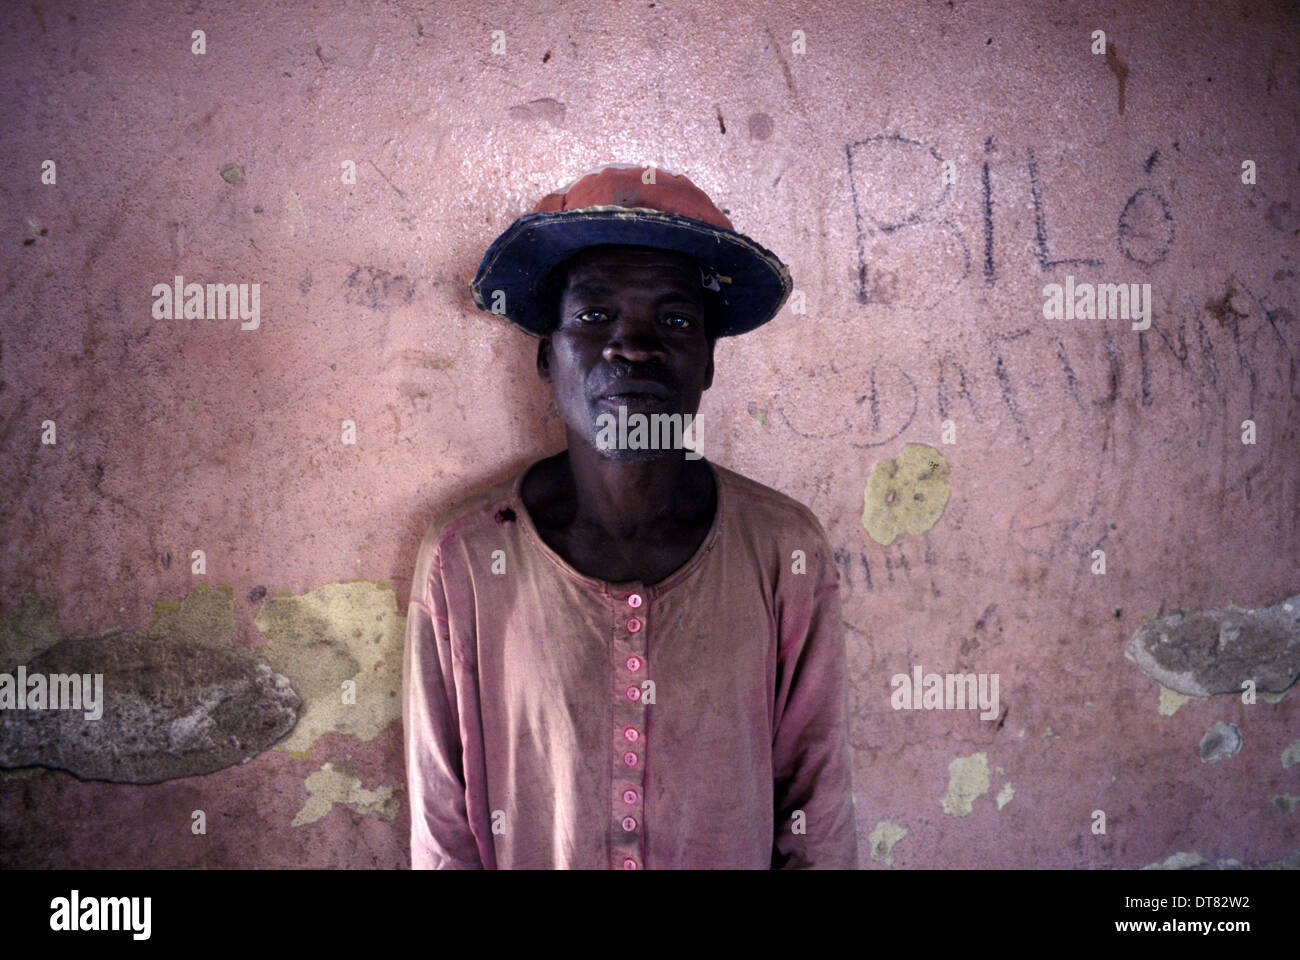 A refugee takes shelter in an old school. Angolan Civil War (1975-2002) - Stock Image